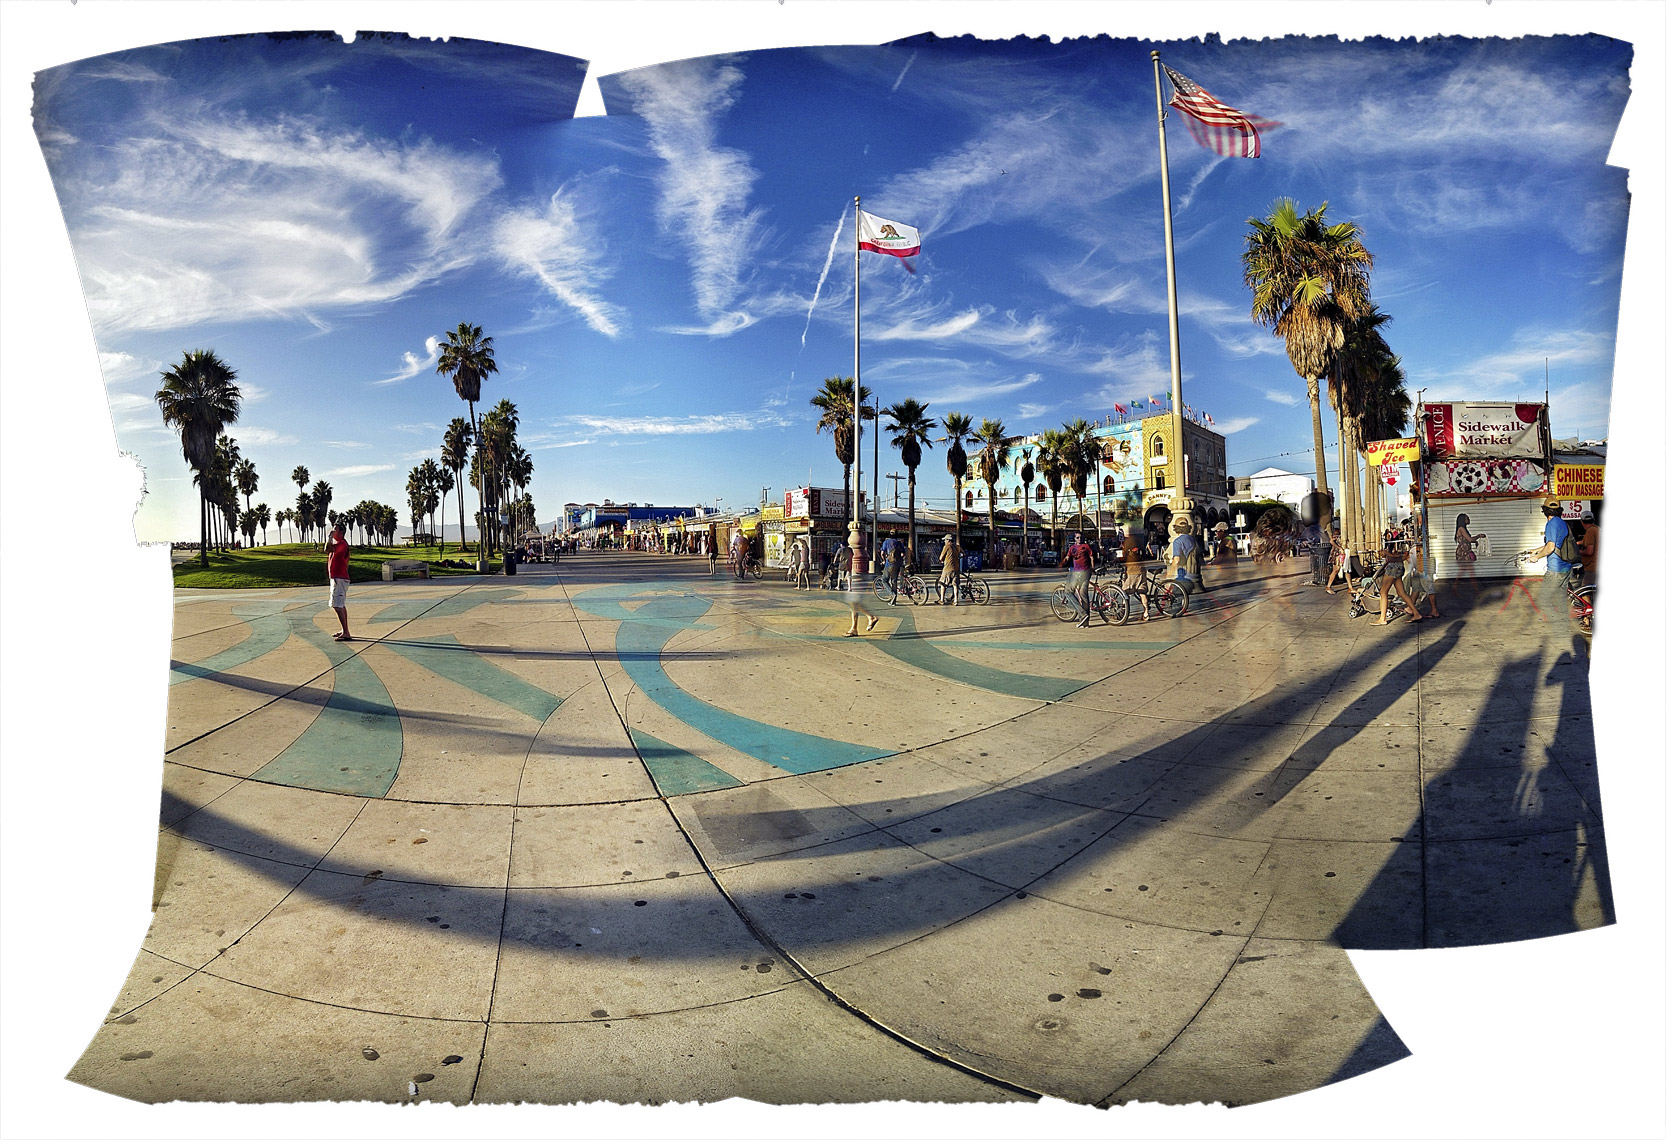 davidhoptman_photo-iPhone-Venice_brdwalkflags